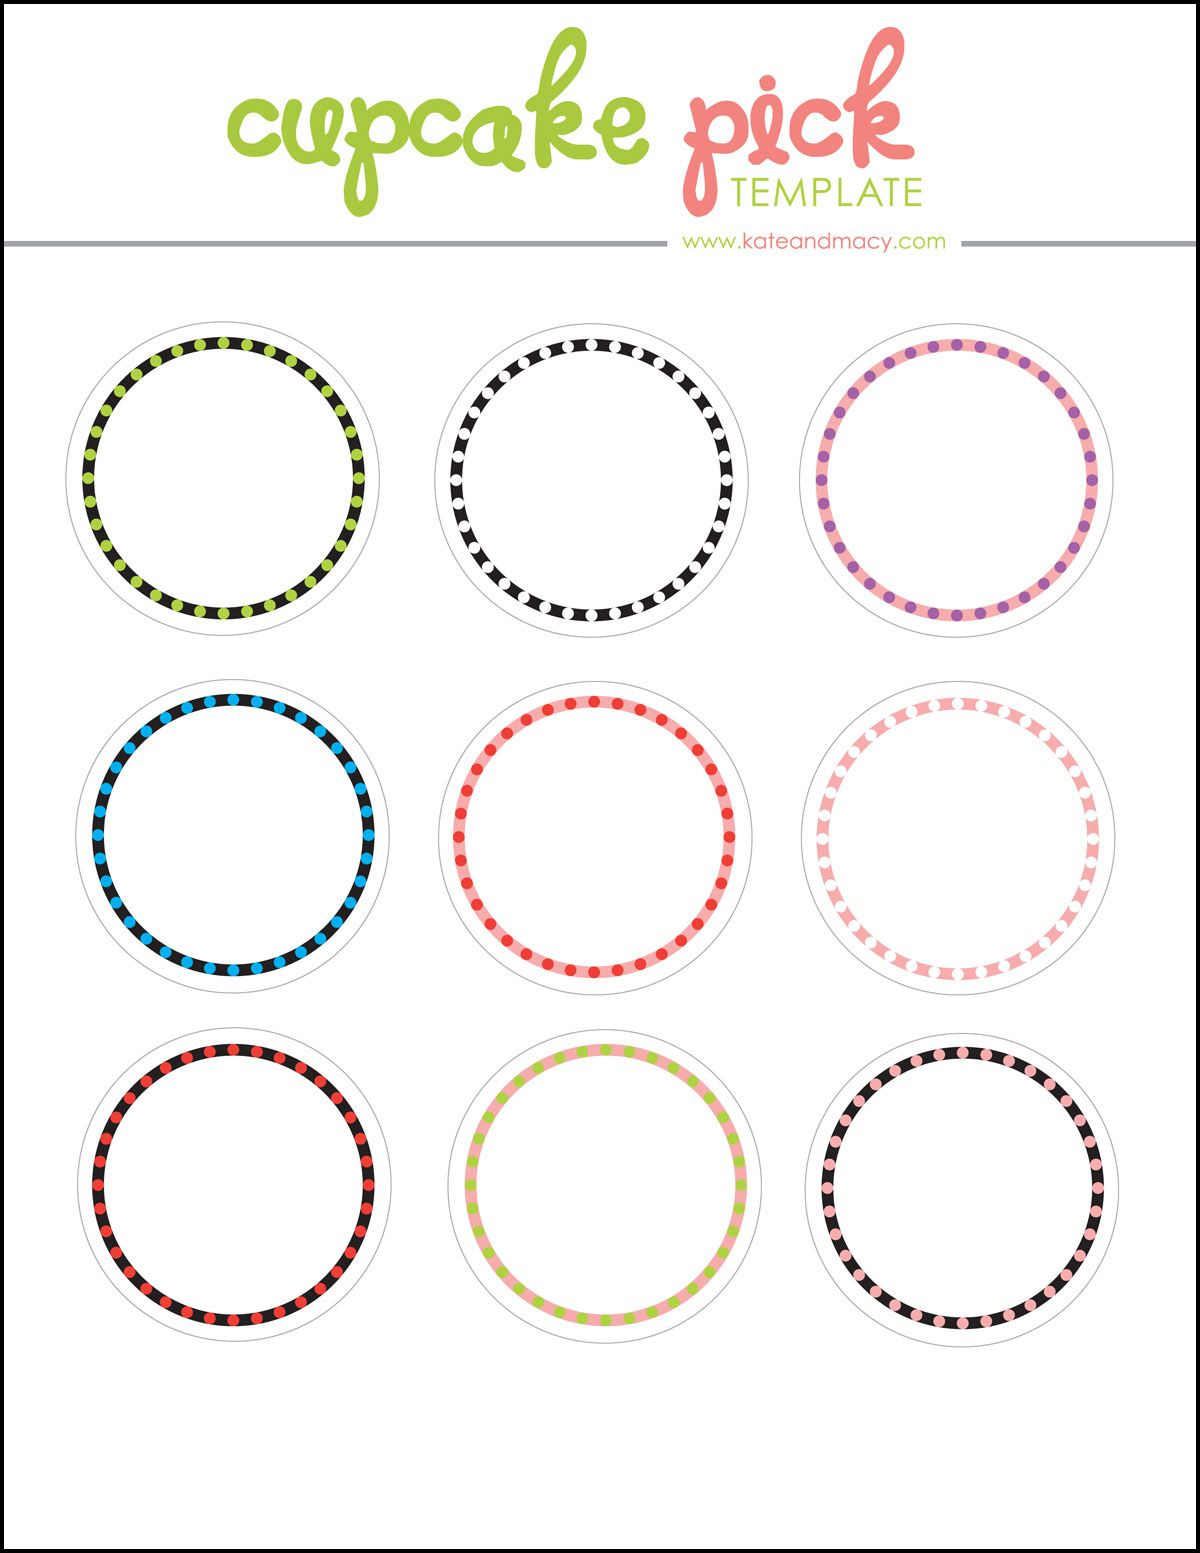 I 39 Ve Never Made Or Used Cupcake Picks Before But After This Project I Can See The Sky Will Cupcake Toppers Template Cupcake Template Cupcake Toppers Diy